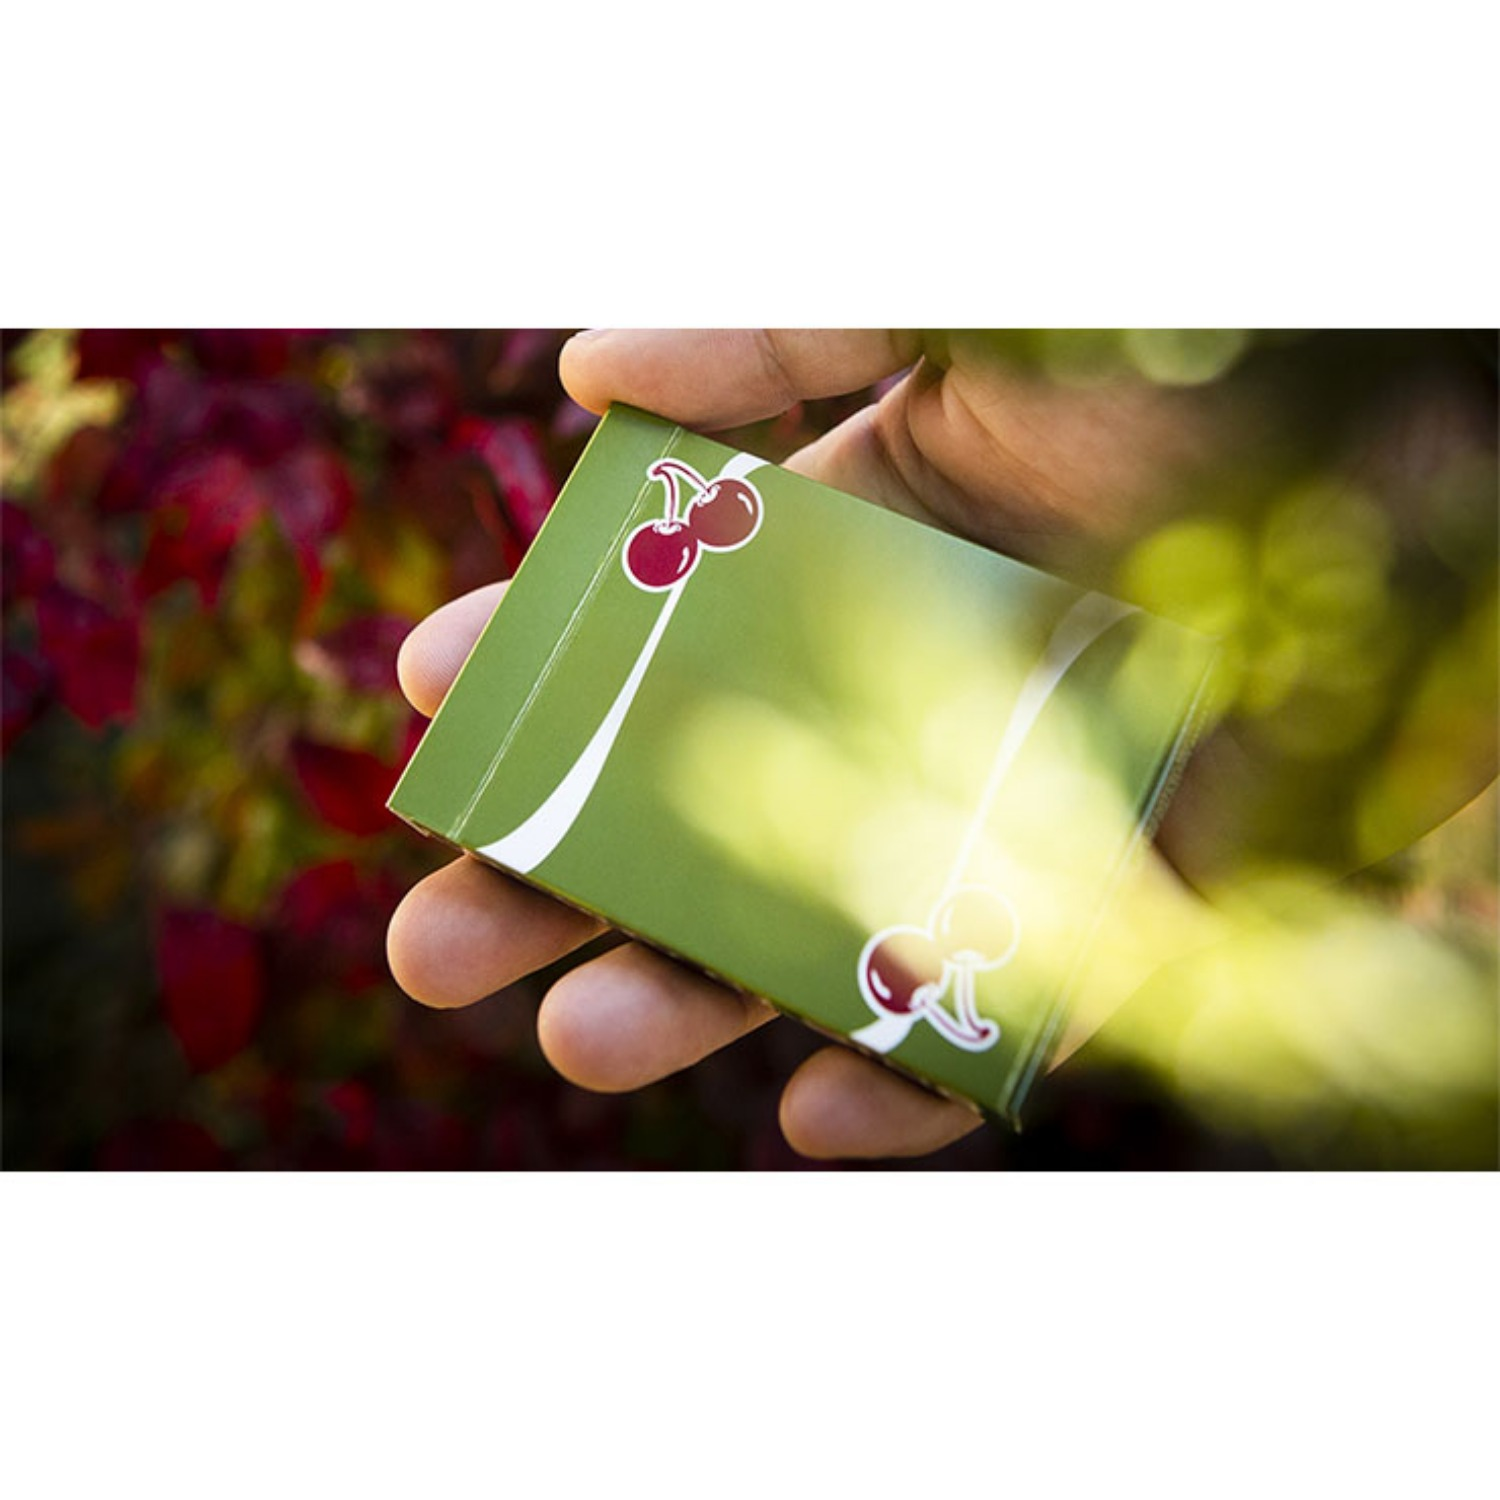 [체리카지노/ 사하라그린]Cherry Casino Fremonts (Sahara Green) Playing Cards by Pure Imagination Projects